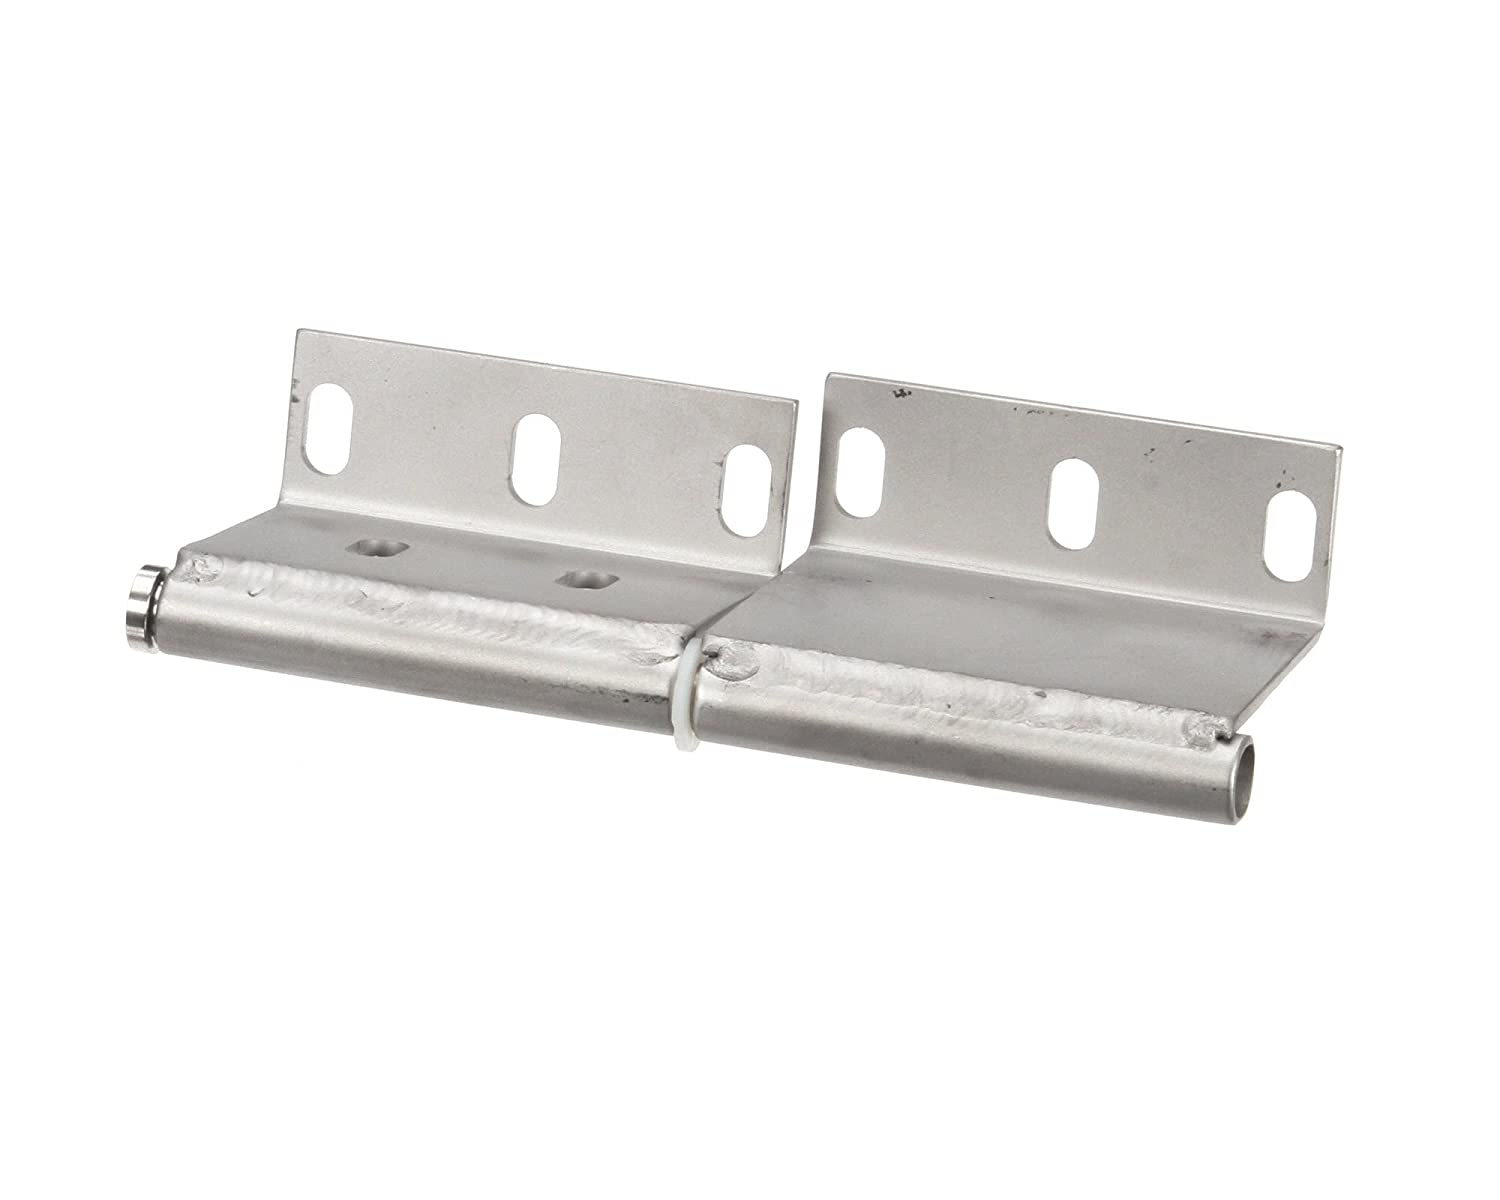 Delfield 000-BJ4-0030-S Hinge Dr Acr-26S Right Assembly 71ZCPB5ur6L._SL1500_